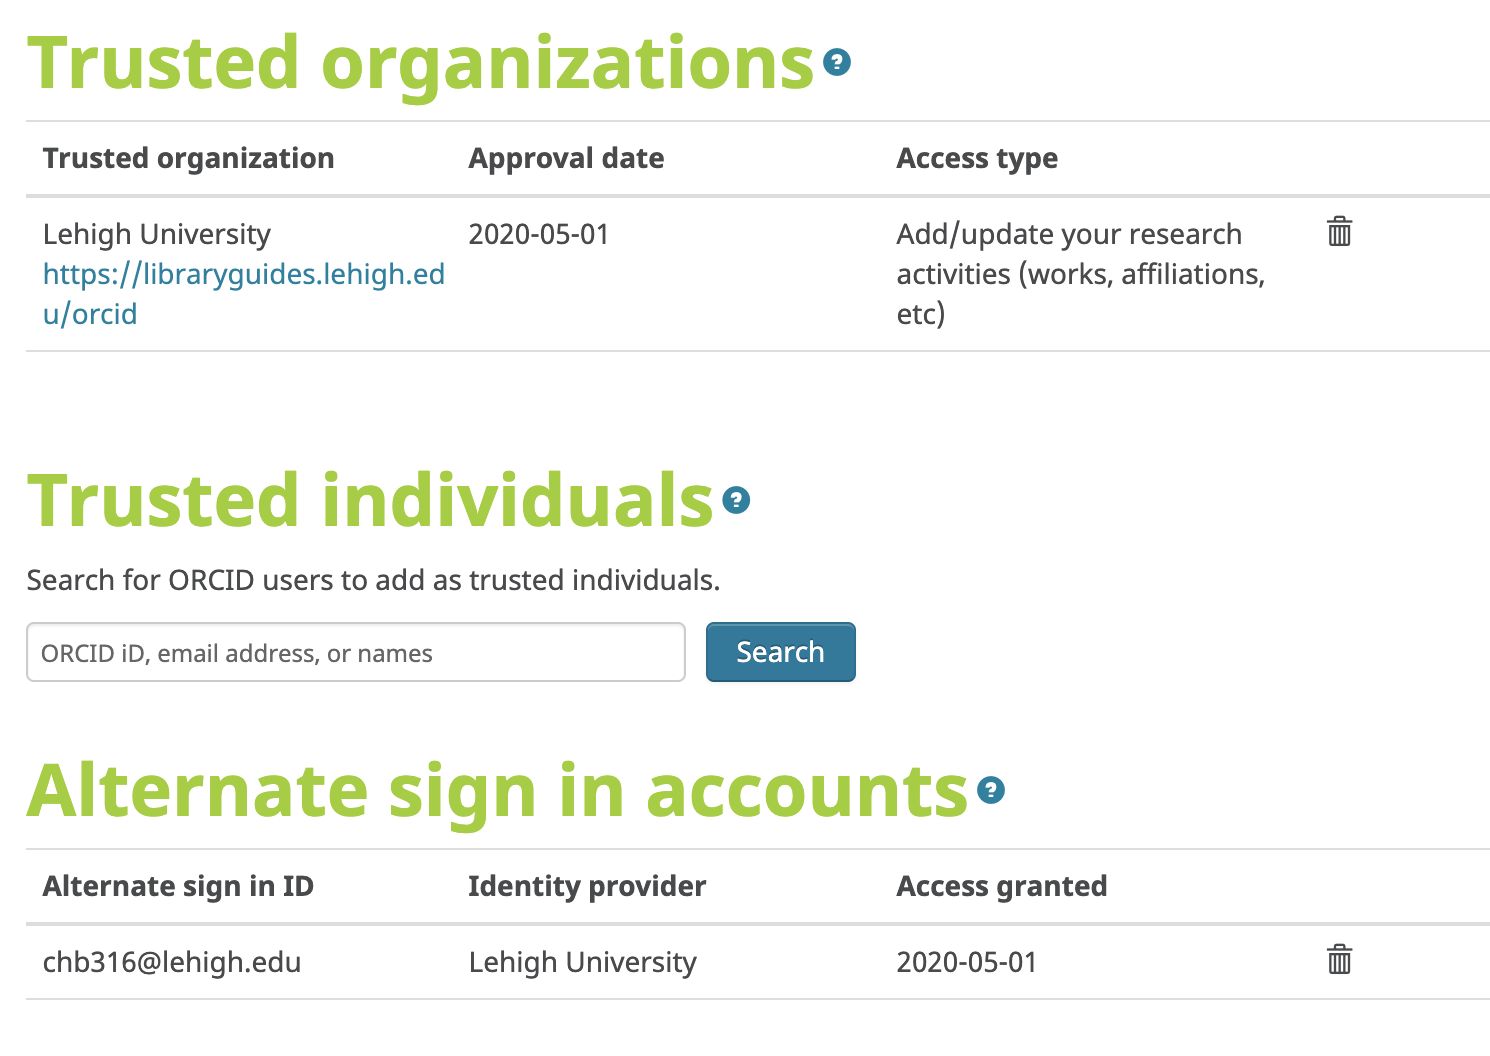 ORCID trusted organizations alternate sign in accounts screen